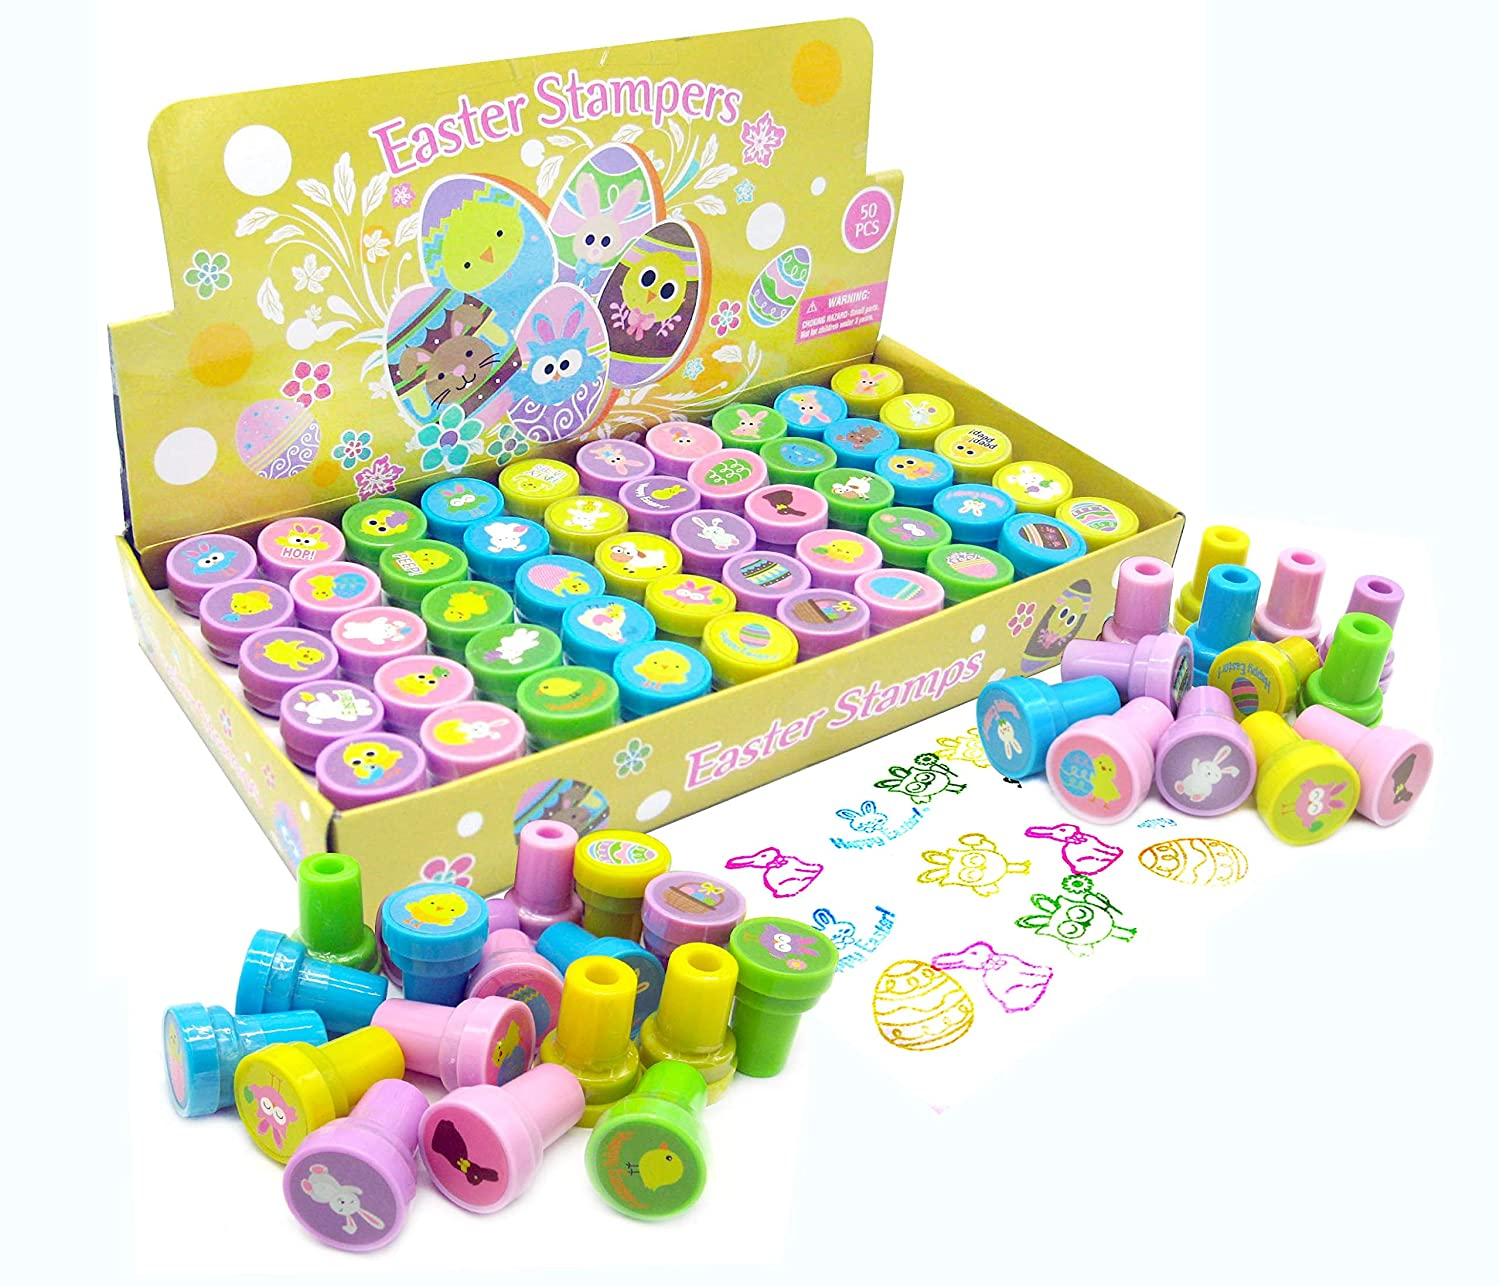 TINYMILLS 50 Pcs Easter Assorted Stampers for Kids